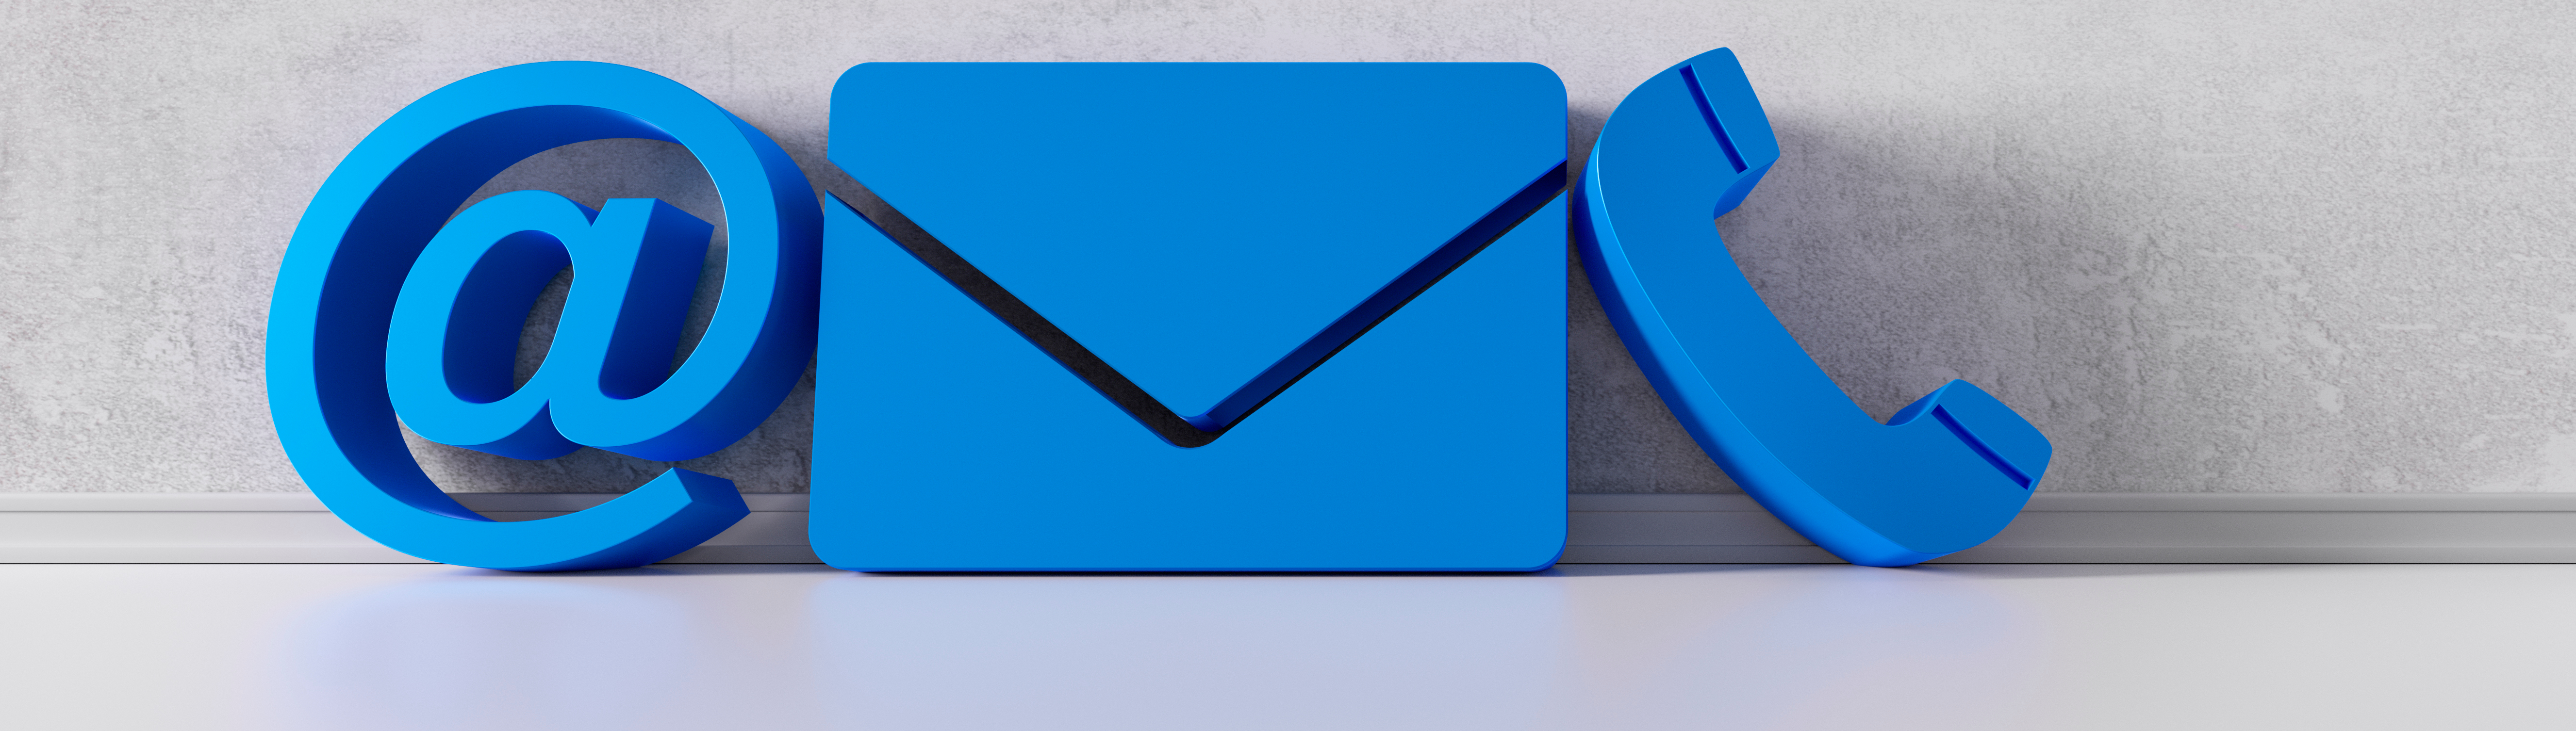 3D icons for email, letter and phone on ORLIN Technologies Ltd Contact page